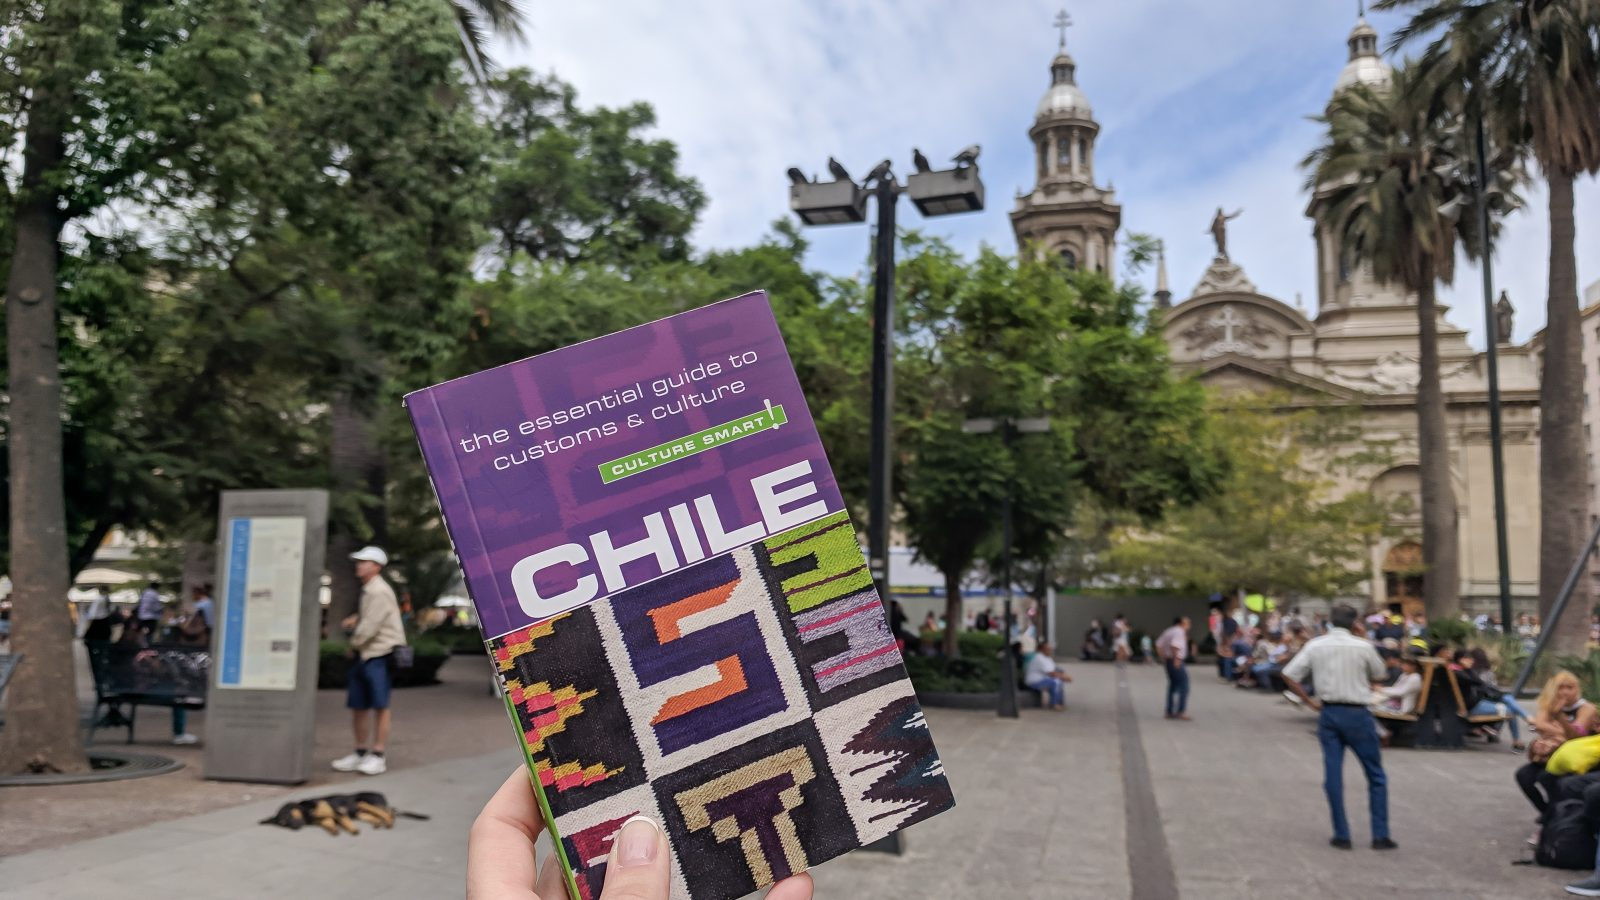 The Best Travel Guidebooks for Culture Smart Travelers   Culture Smart! guidebooks review   Culture Smart! Chile in Santiago #guidebook #traveltips #culturesmart #chile